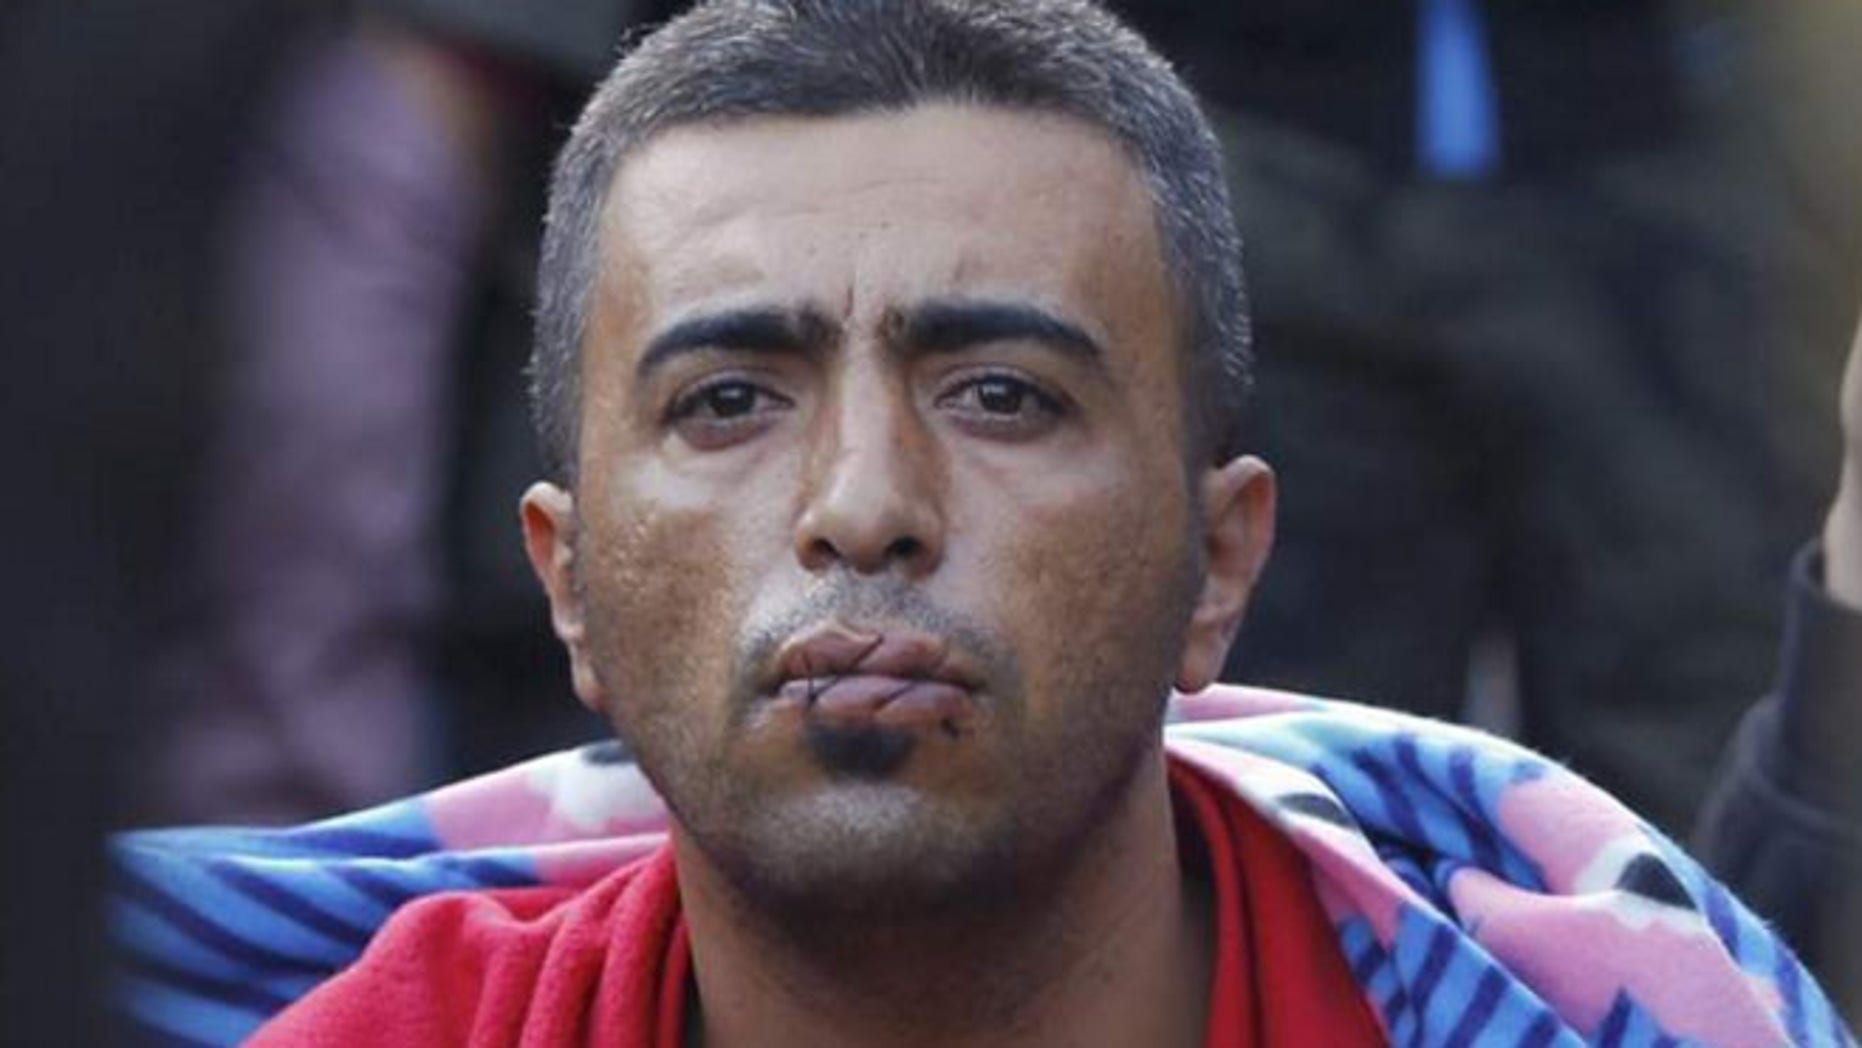 Several refugees have sewn their lips together with a cord.